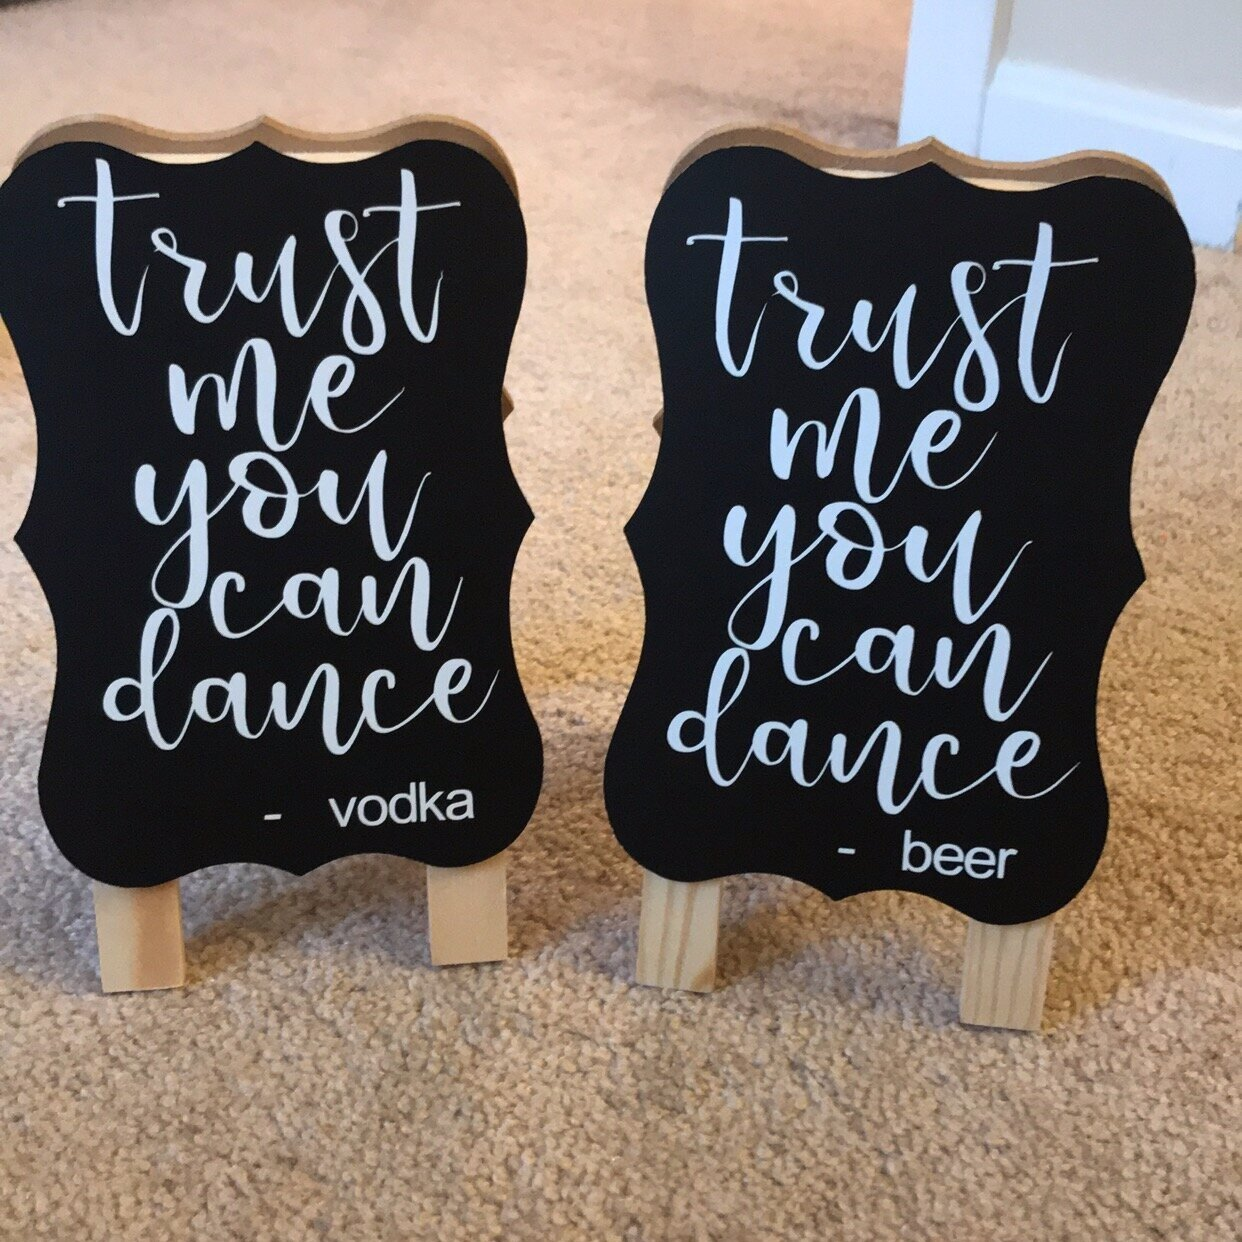 Trust me you can dance bar sign - Perfect to put up at the bars or on the guest's tables to inspire them to get on the dance floor!